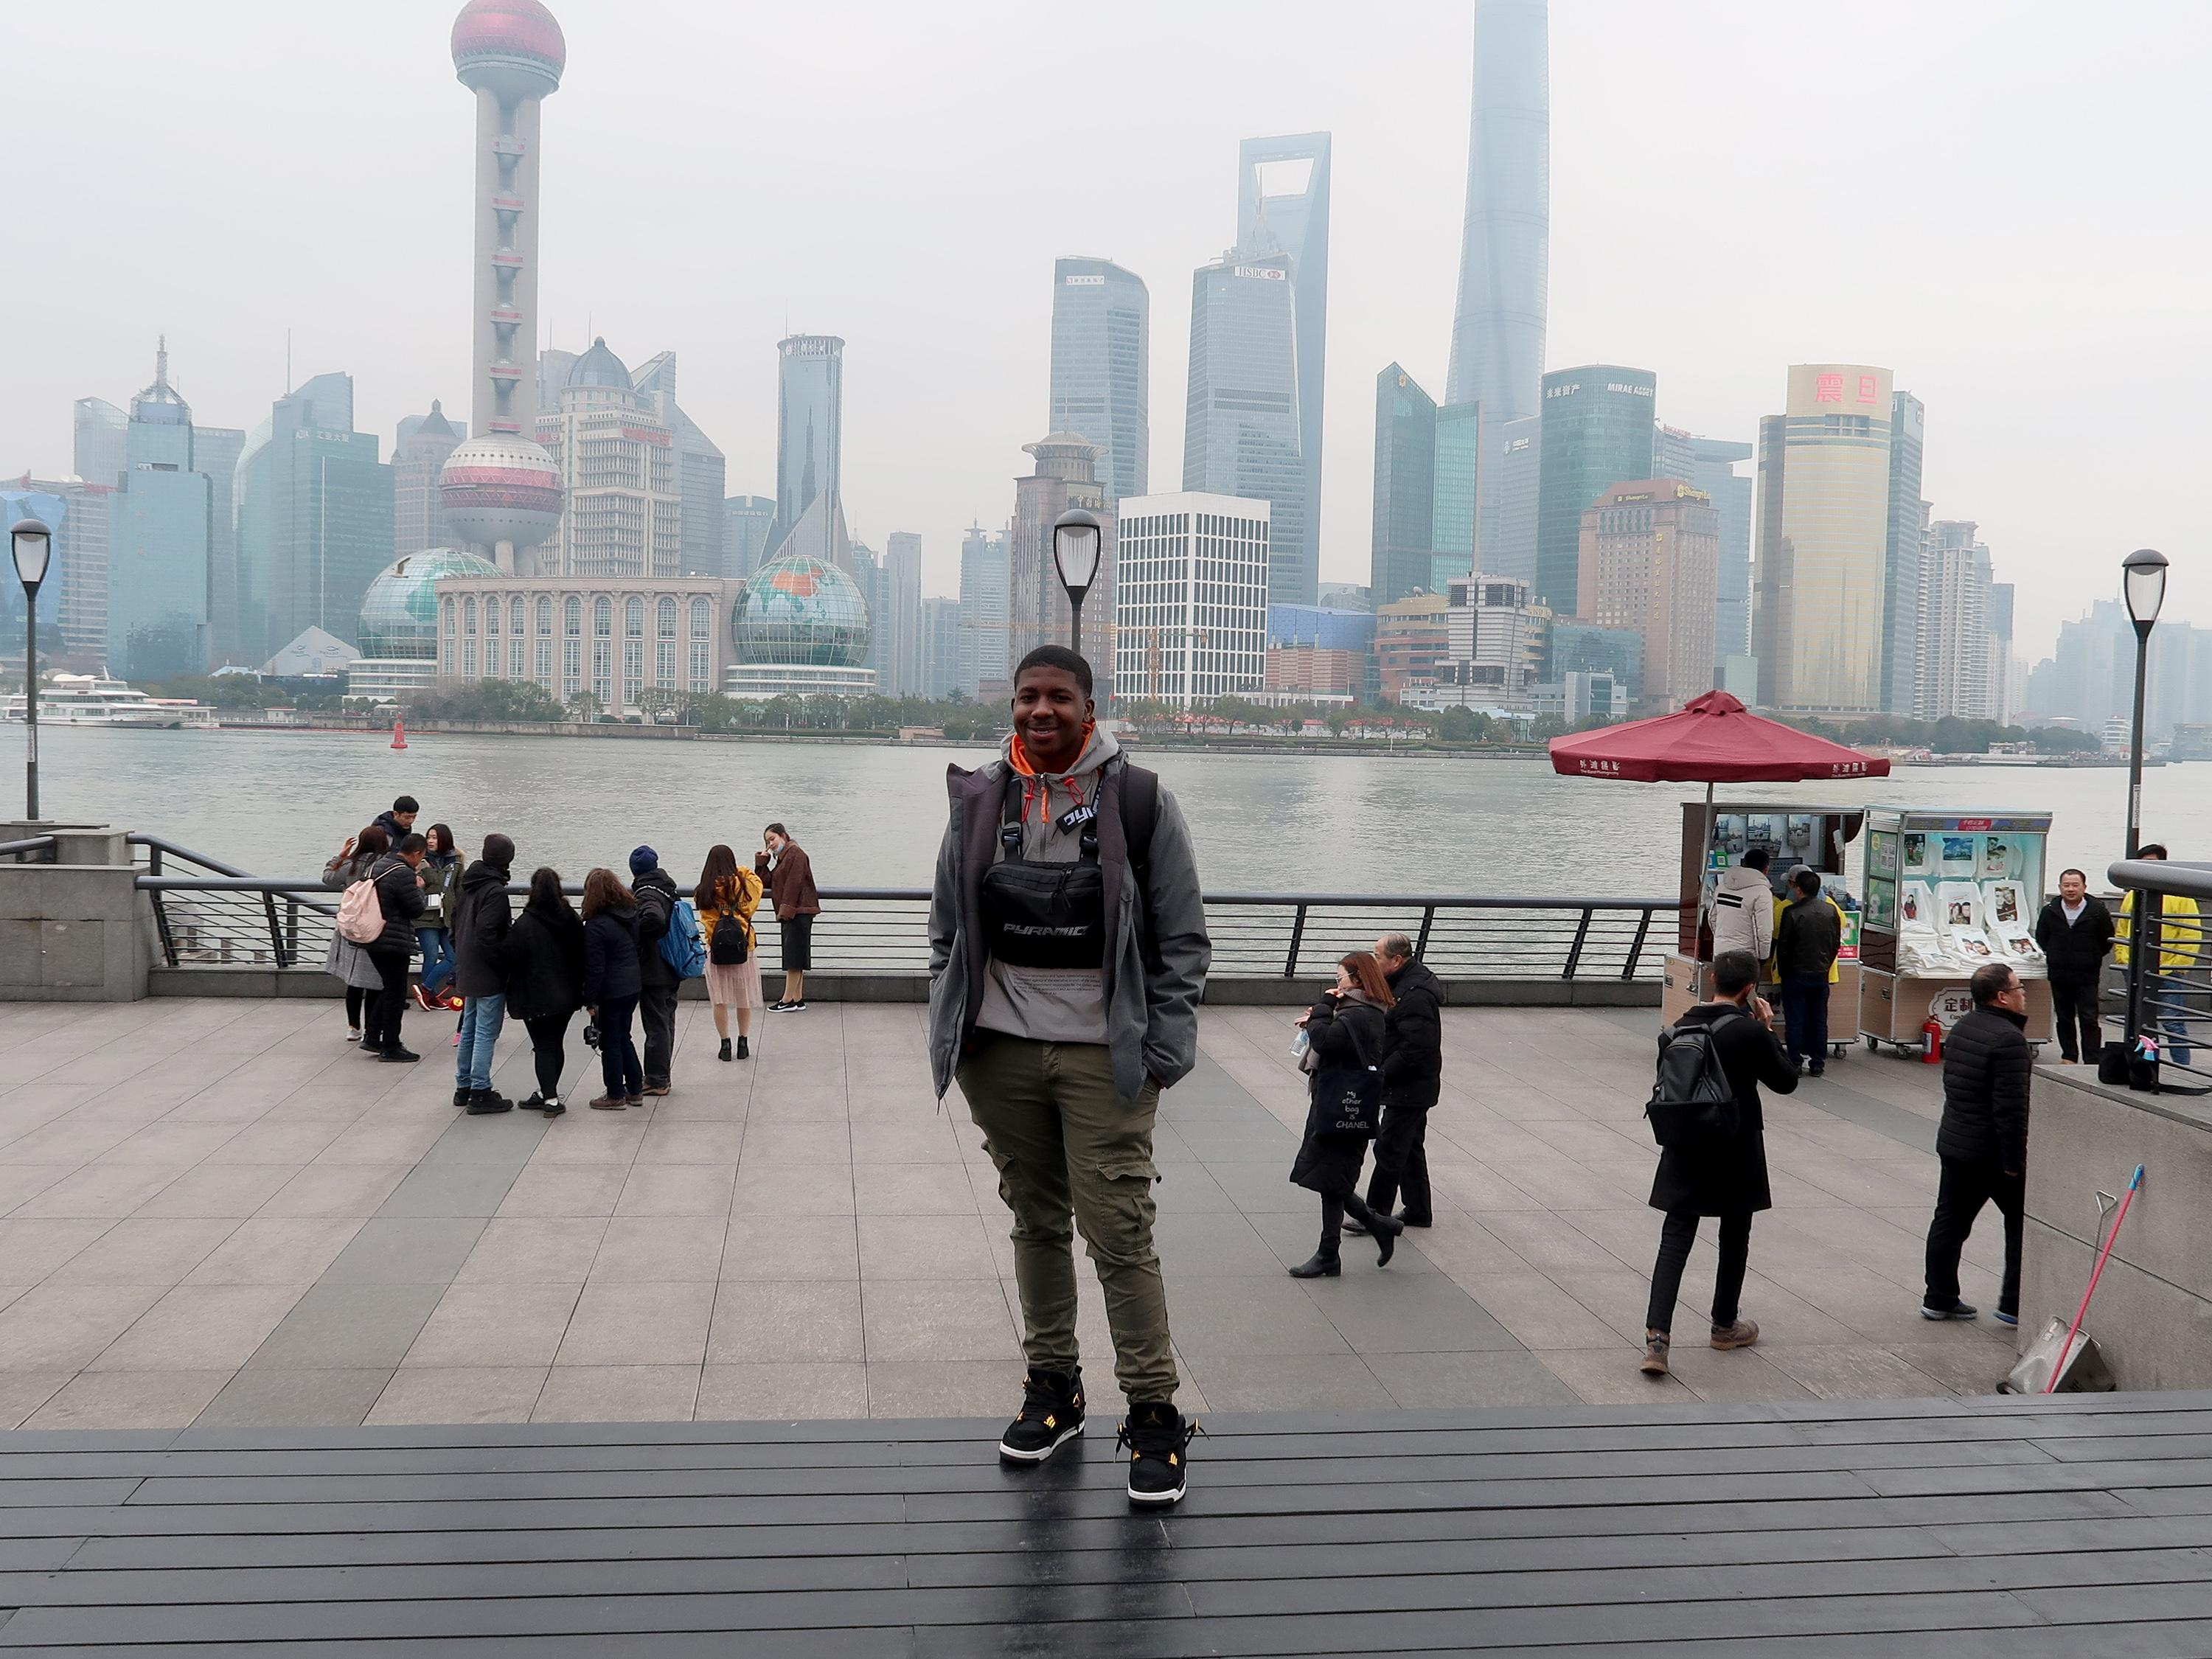 Diandre Coote-Anderson, senior finance major who studied abroad in Shanghai, China, stands in front of a modern cityscape